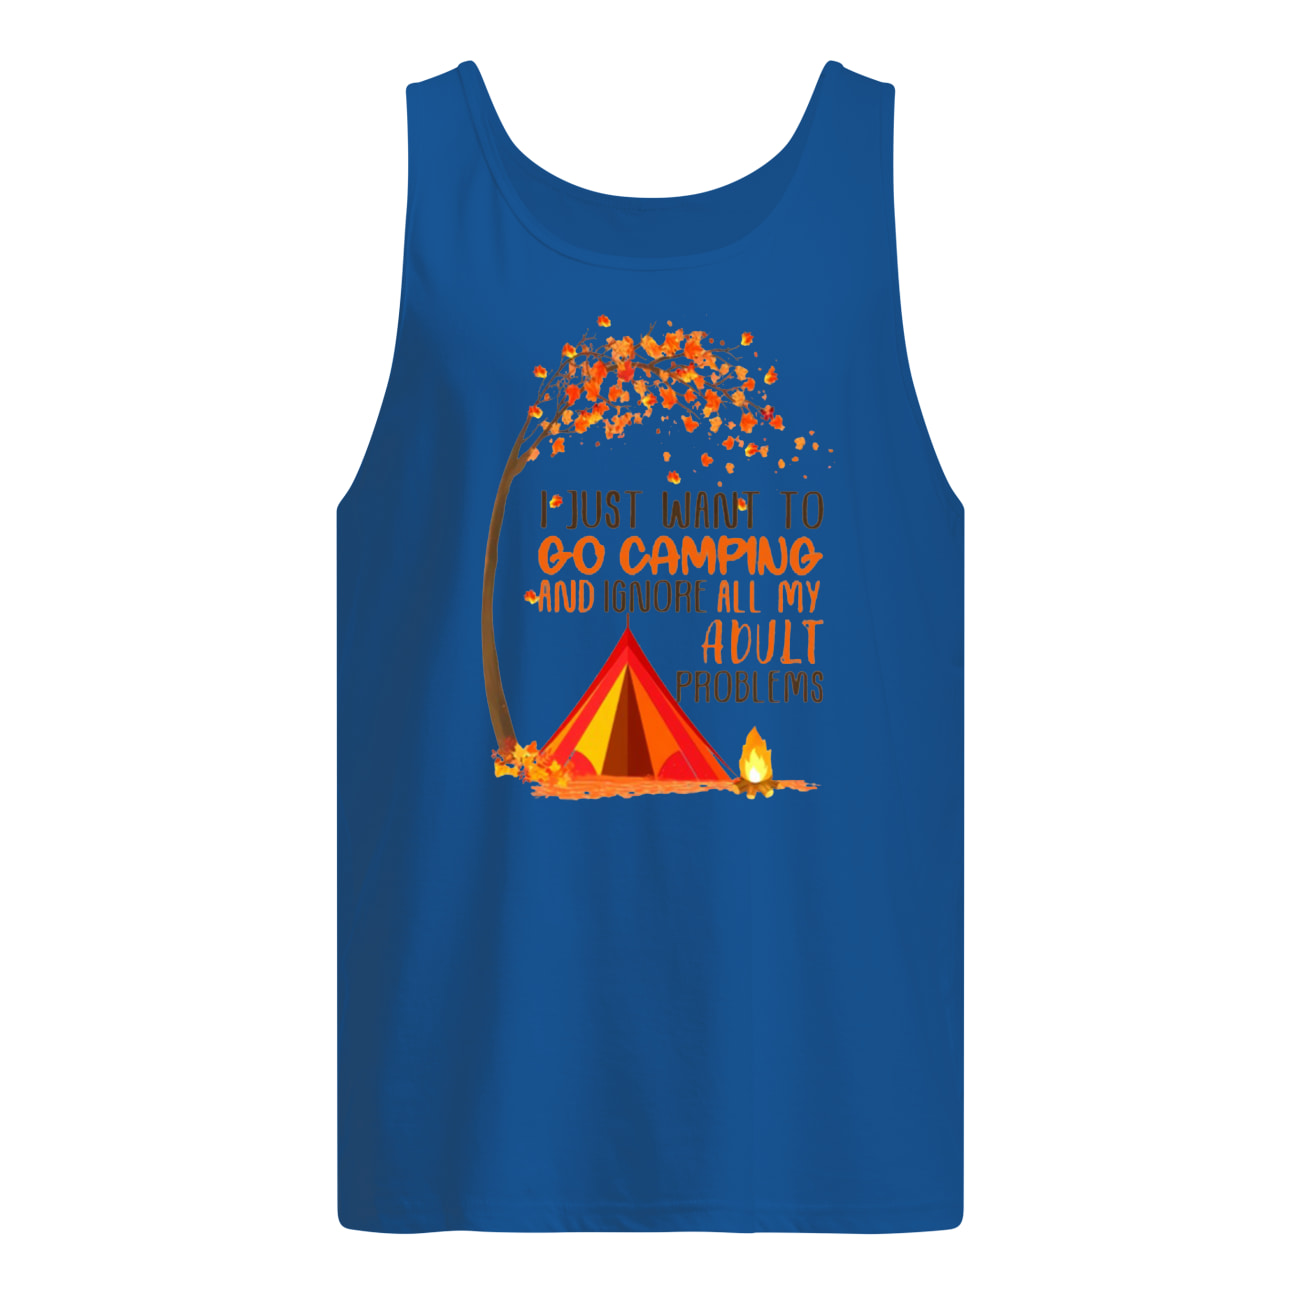 I just want to go camping and ignore all of my adult problems tank top